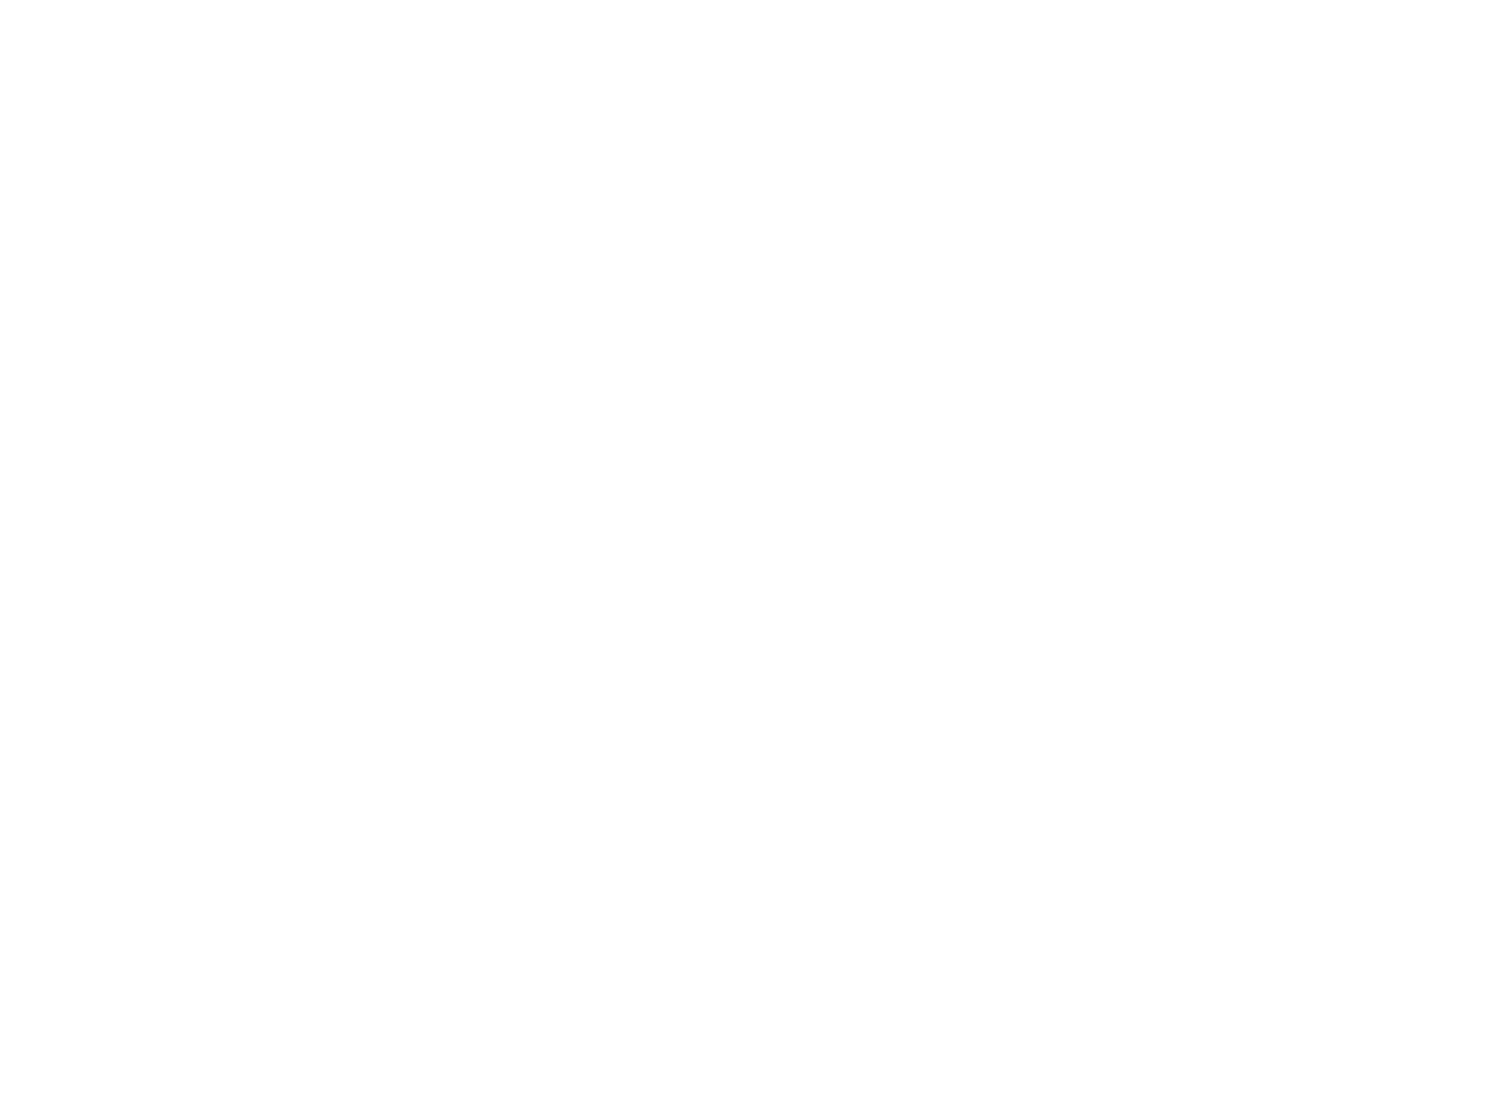 Jaime Collins Photography